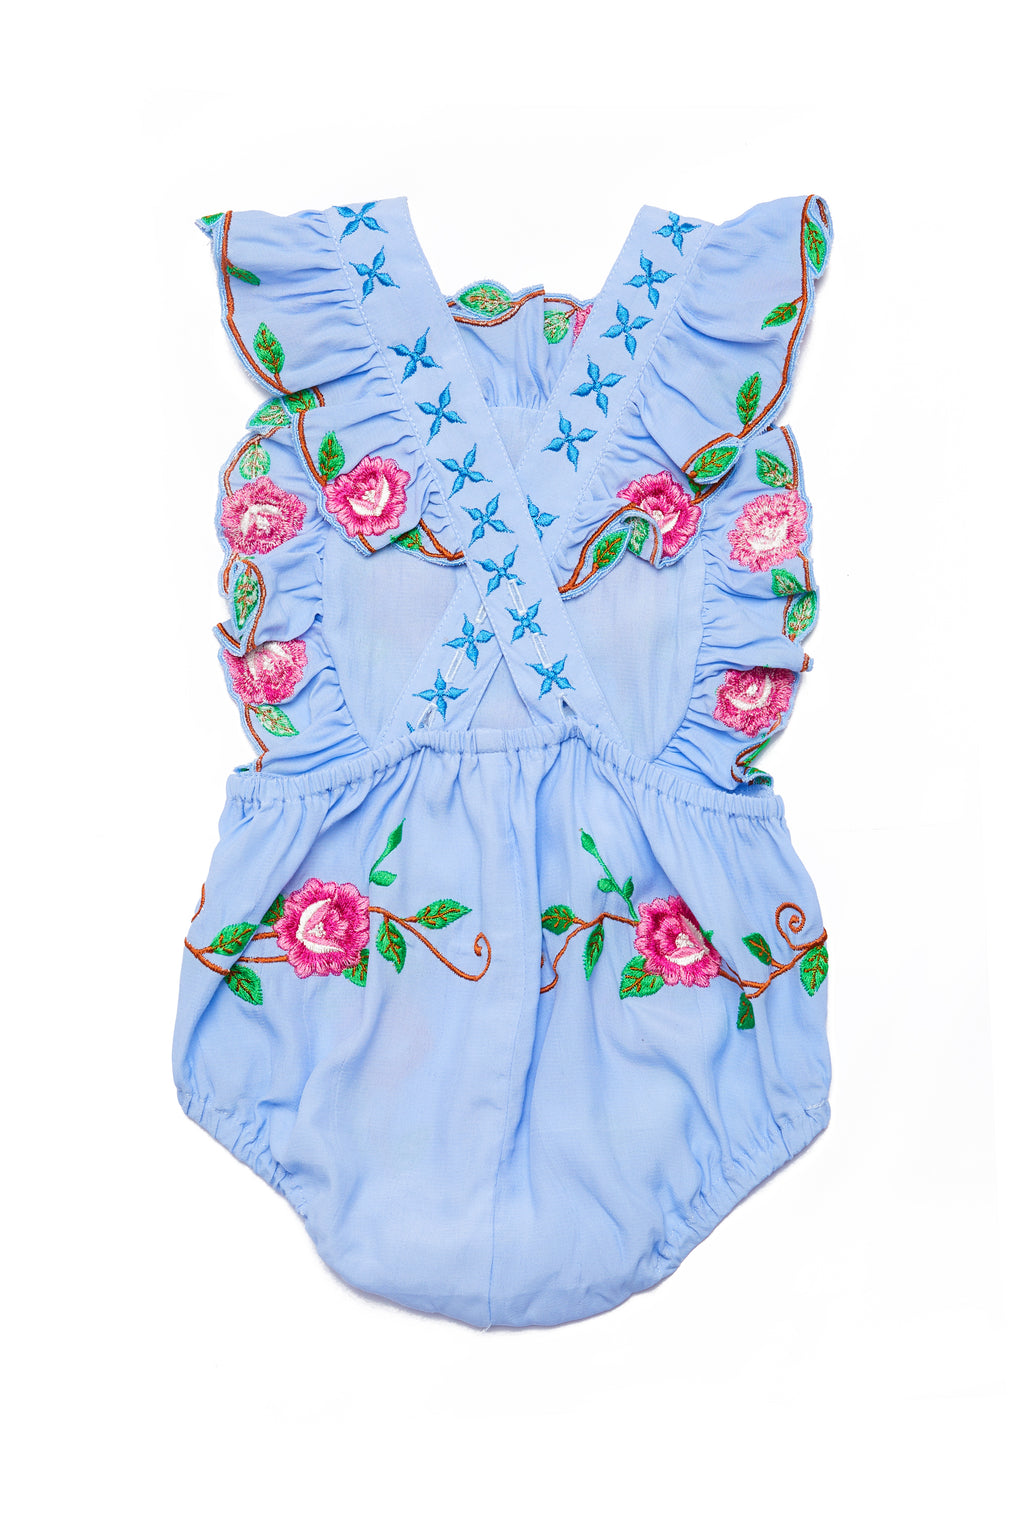 FILLYBOO MINI - 'IS THERE LOVE ON MARS?' - BABY PLAYSUIT